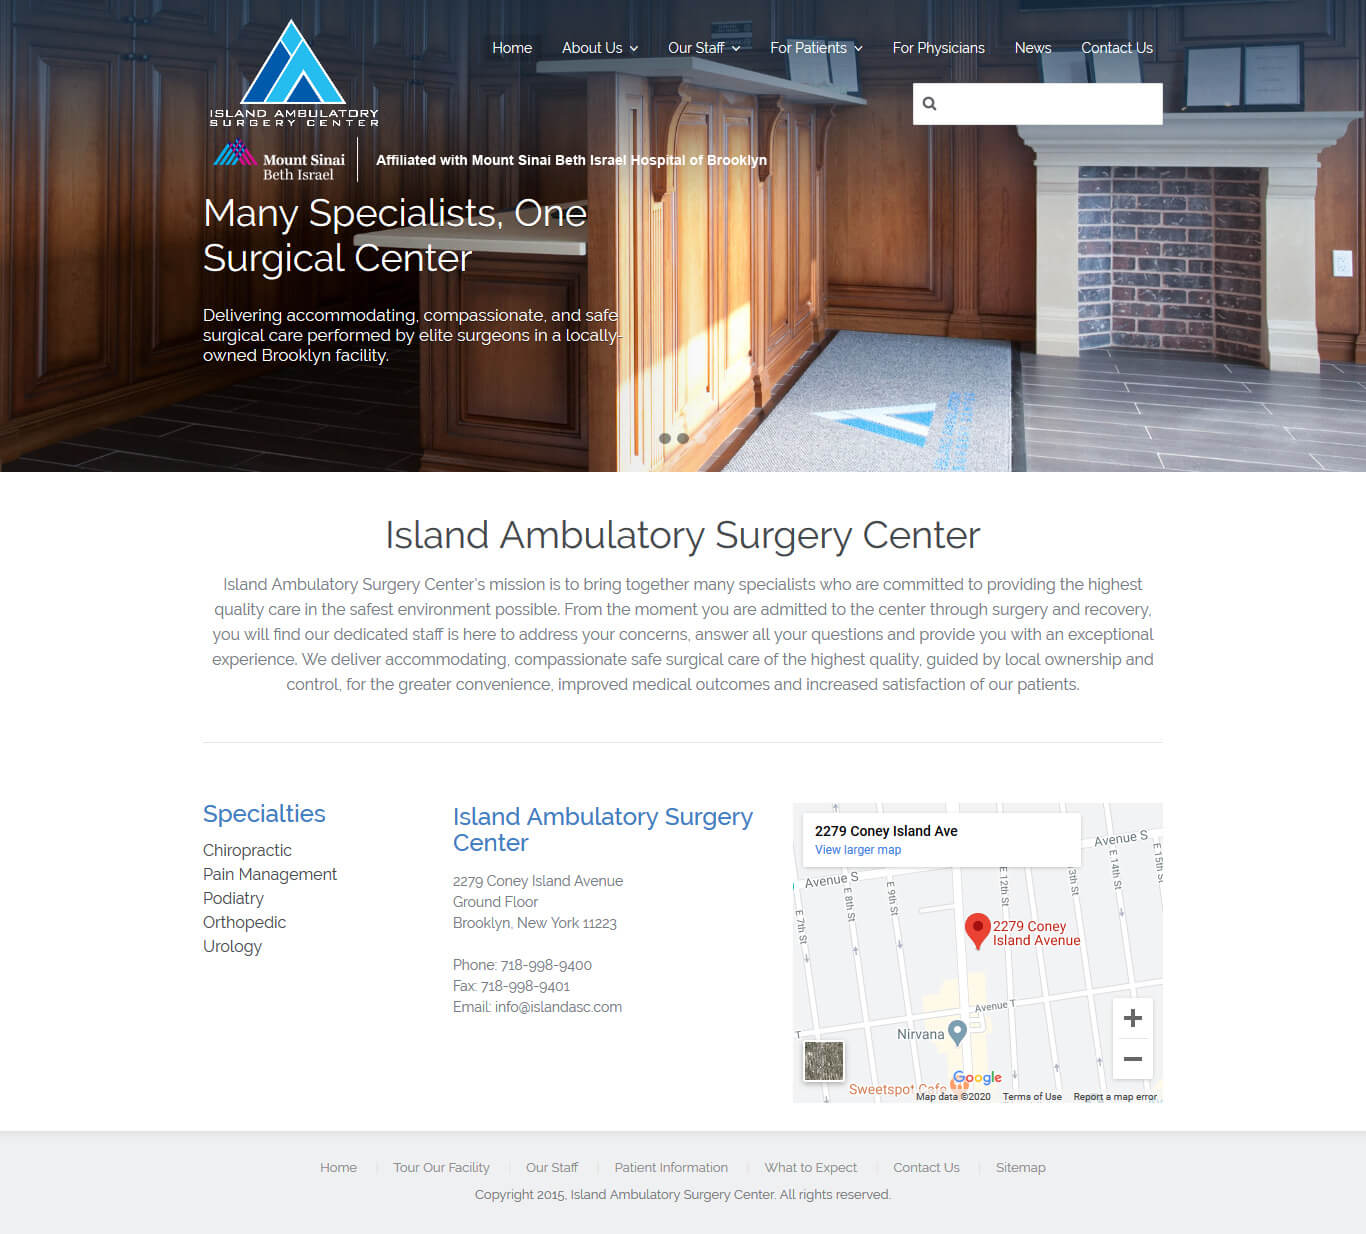 Island Ambulatory Surgery Center - http://www.islandasc.com